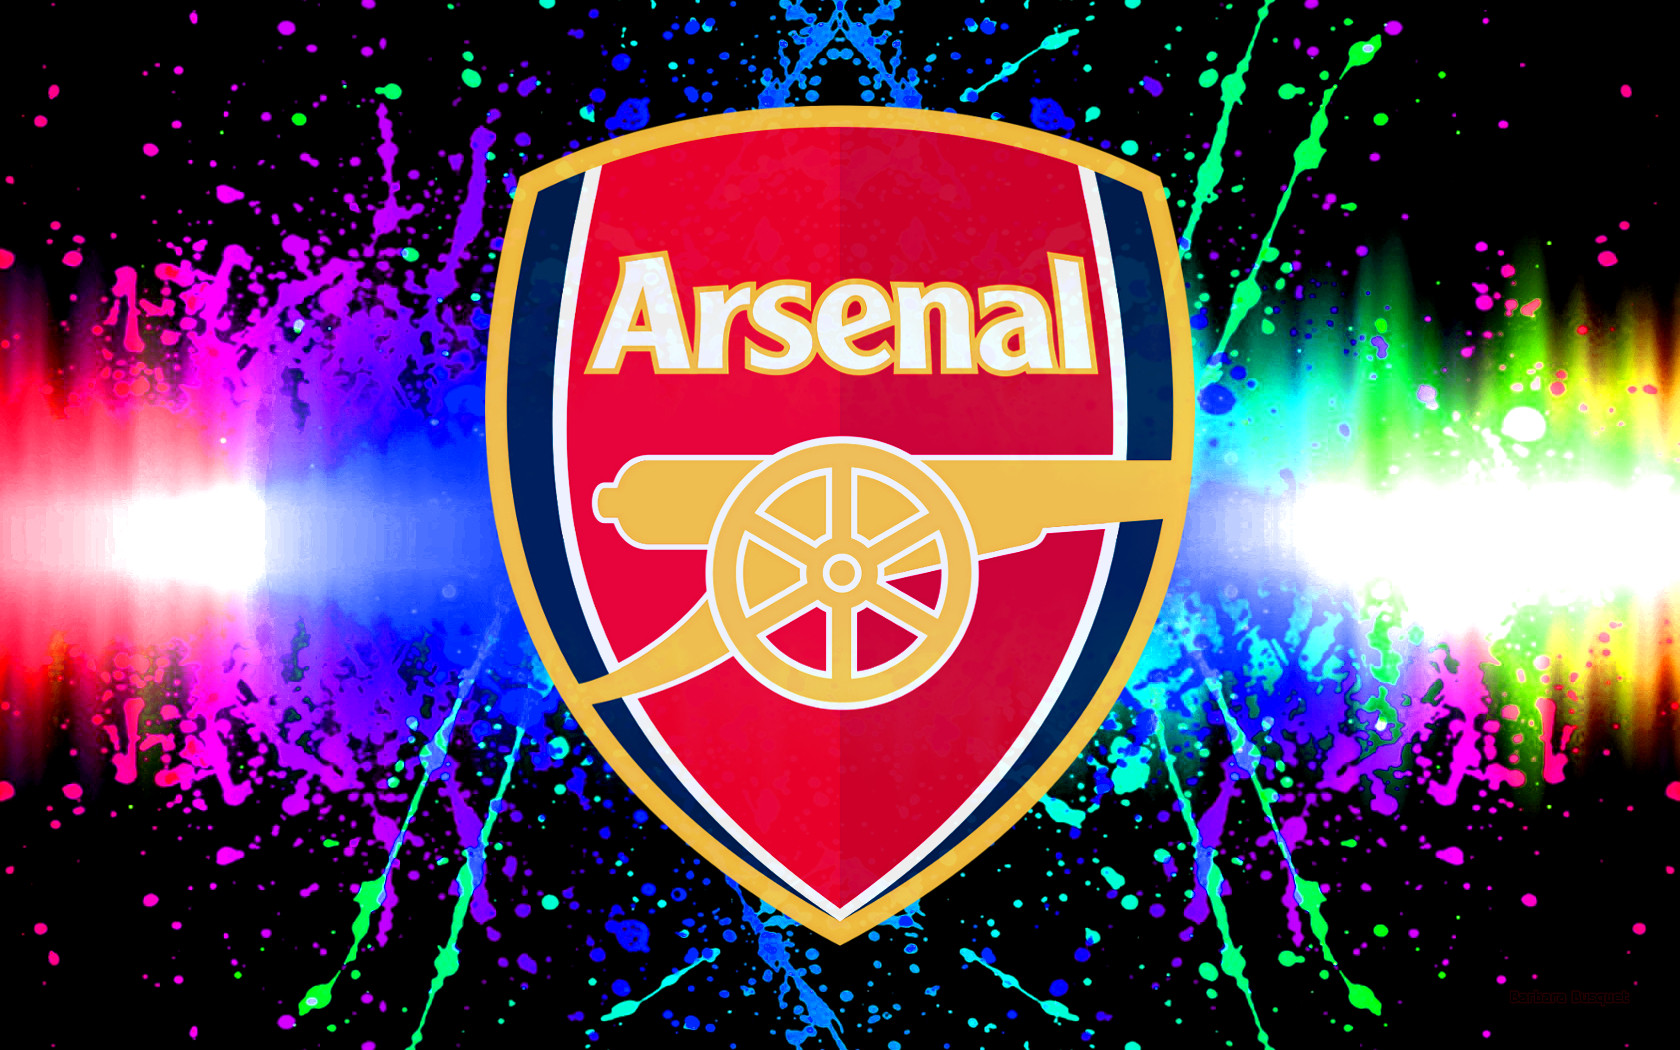 Arsenal FC Logo Wallpapers - Barbaras HD Wallpapers